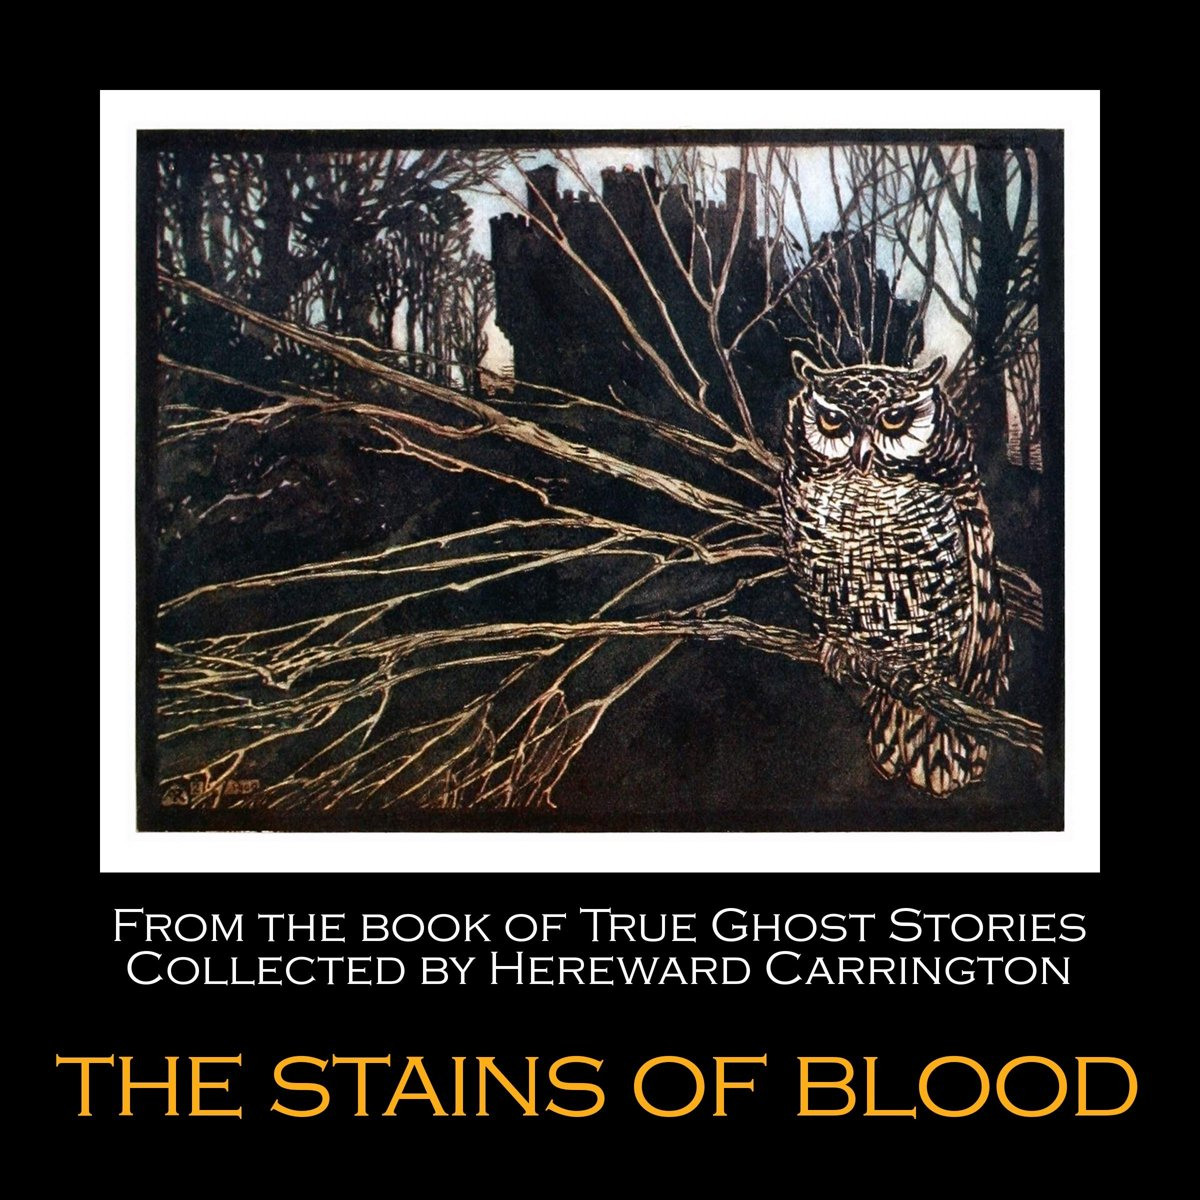 Stains of Blood, The